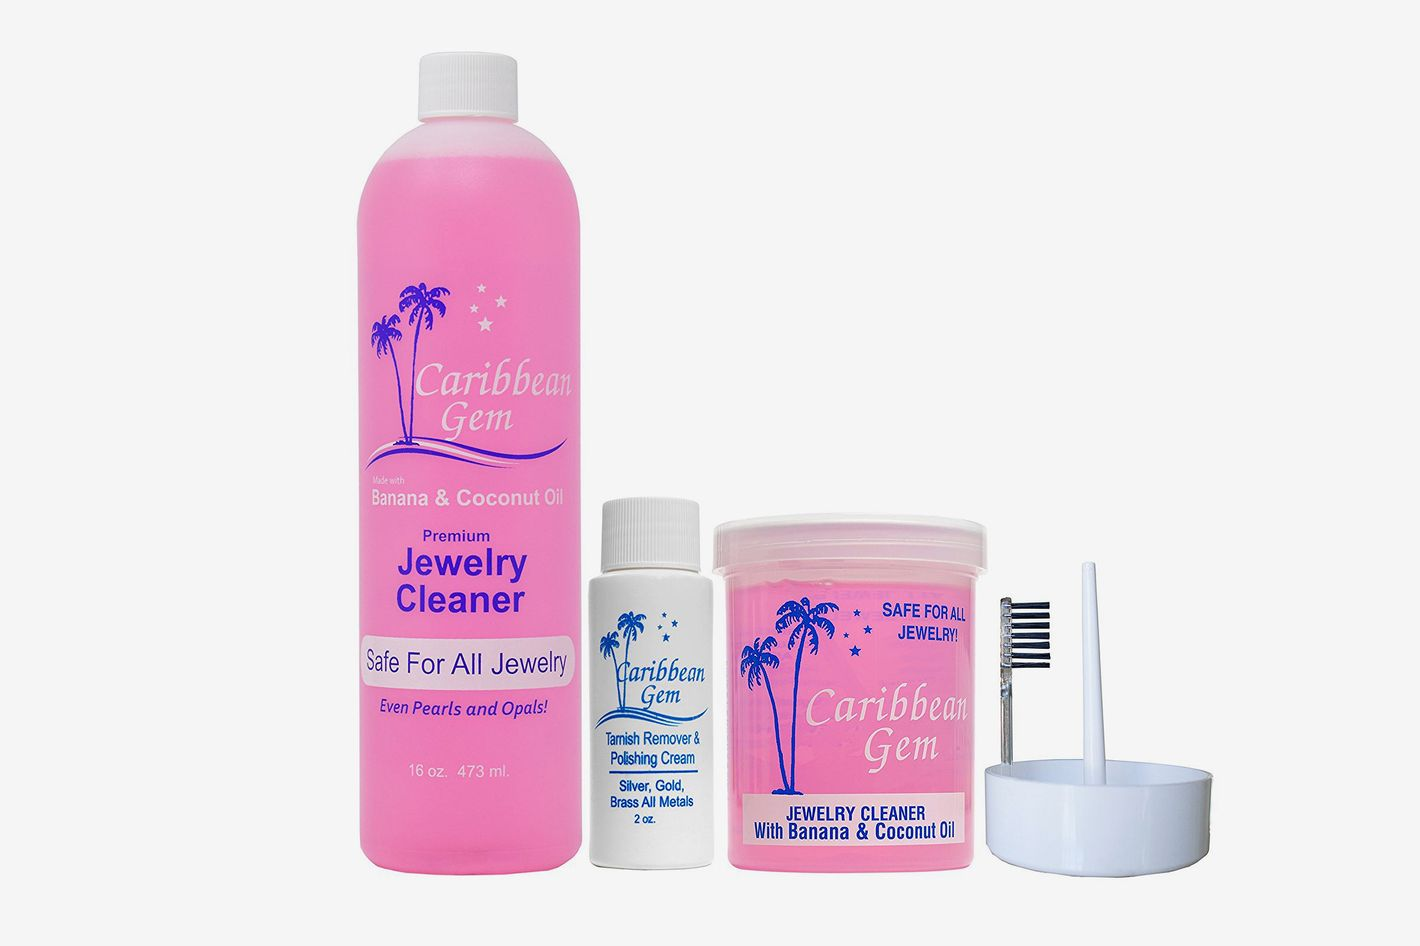 Caribbean Gem Banana & Coconut Oil Jewelry Cleaner, Ultra Jewelry Cleaning Kit With Scratch and Tarnish Remover